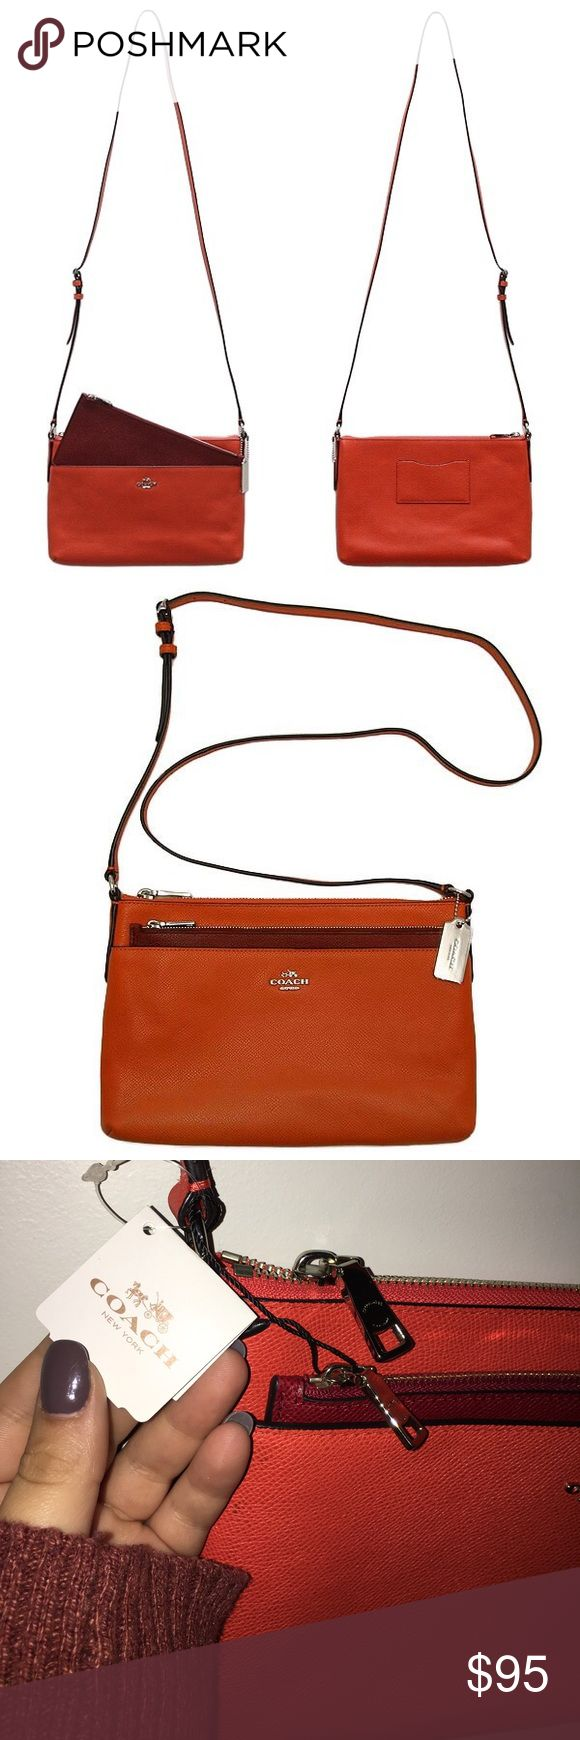 "NWT~ Coach Swingpack Crossbody ~ Coral 🌺 BRAND NEW WITH TAGS Even better than a bestselling Coach Swingpack: one with a removable pouch that can be worn separately. This slim & versatile crossbody keeps essentials neatly & securely organized for weekends & travel within its richly textured leather exterior. Leather  Zip-top closure, fabric lining  Strap w/23"" drop for shoulder or crossbody wear  Removable pouch  10 1/2"" (L) x 6 3/4"" (H) x 1 1/4"" (W) Coach Bags Crossbody Bags"